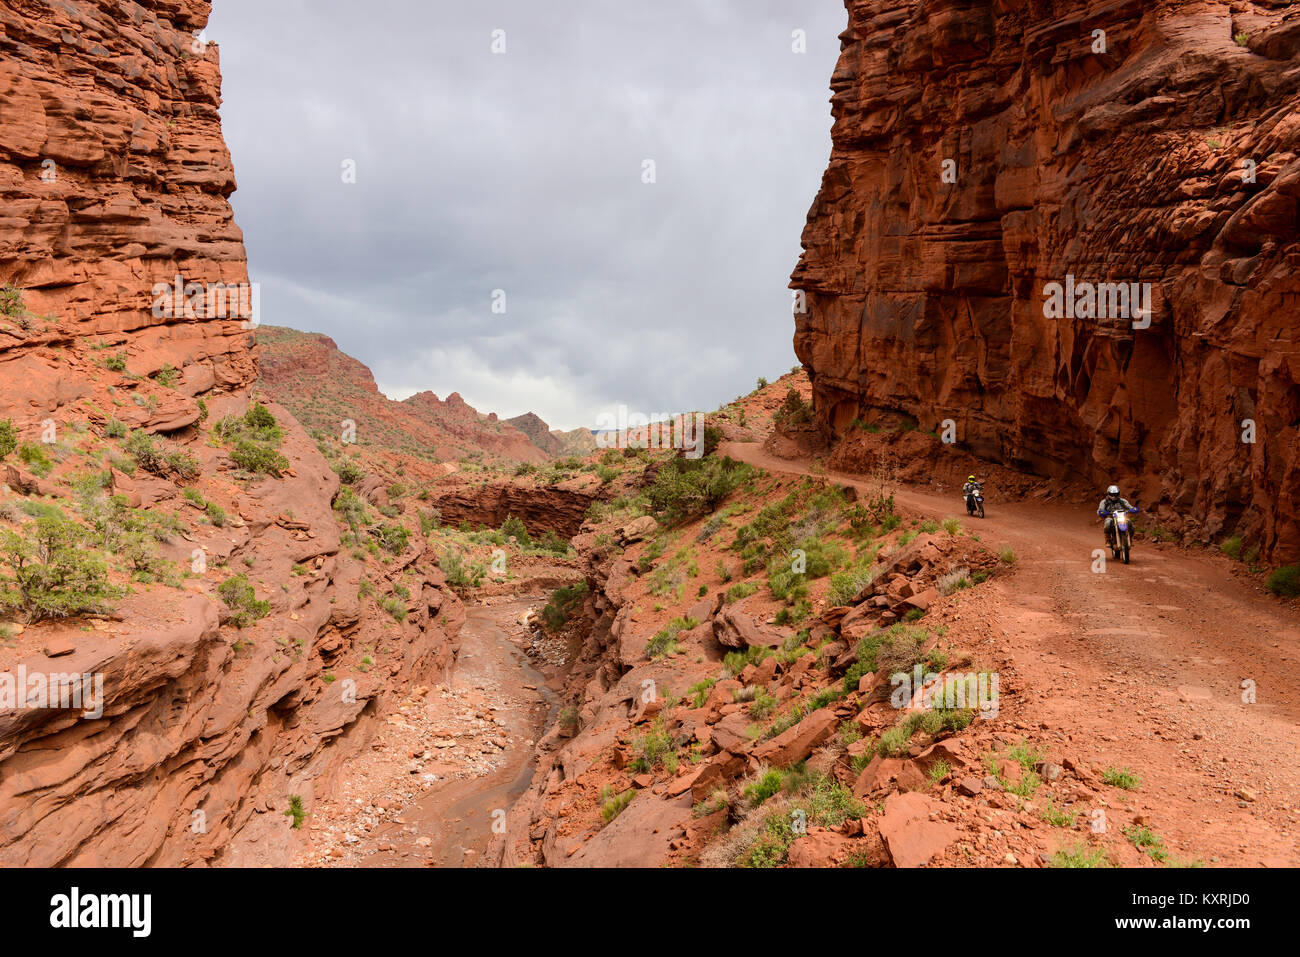 Dirt-bike Riding in Red Canyon - Bikers are enjoying their dirt-road ride in a steep canyon near Colorado River - Stock Image